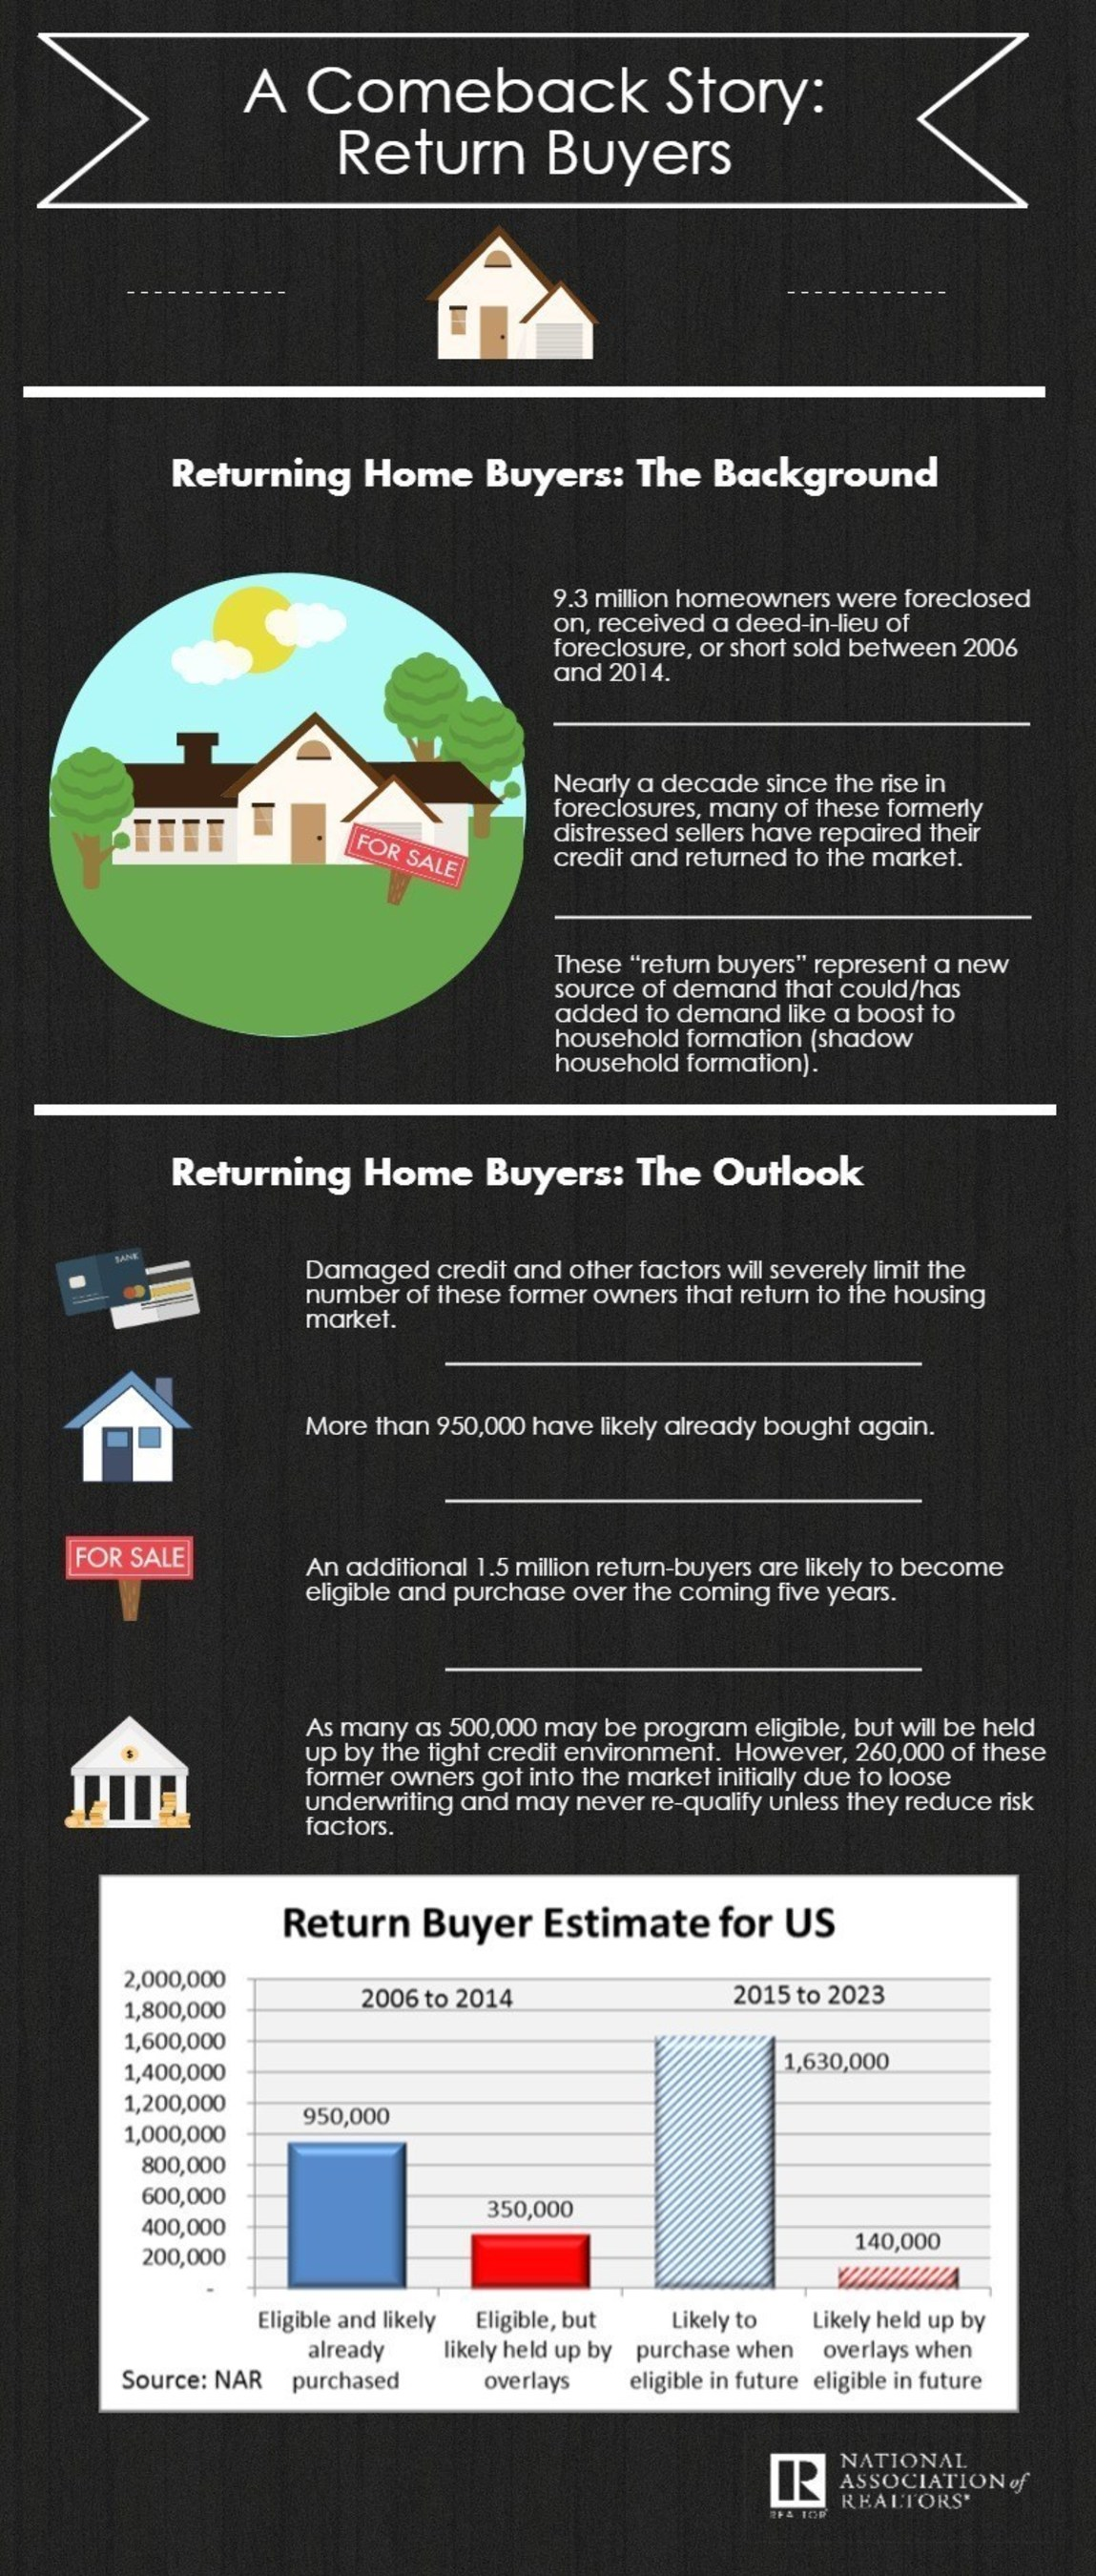 Return Buyers Expected to Boost Housing Demand in Coming Years